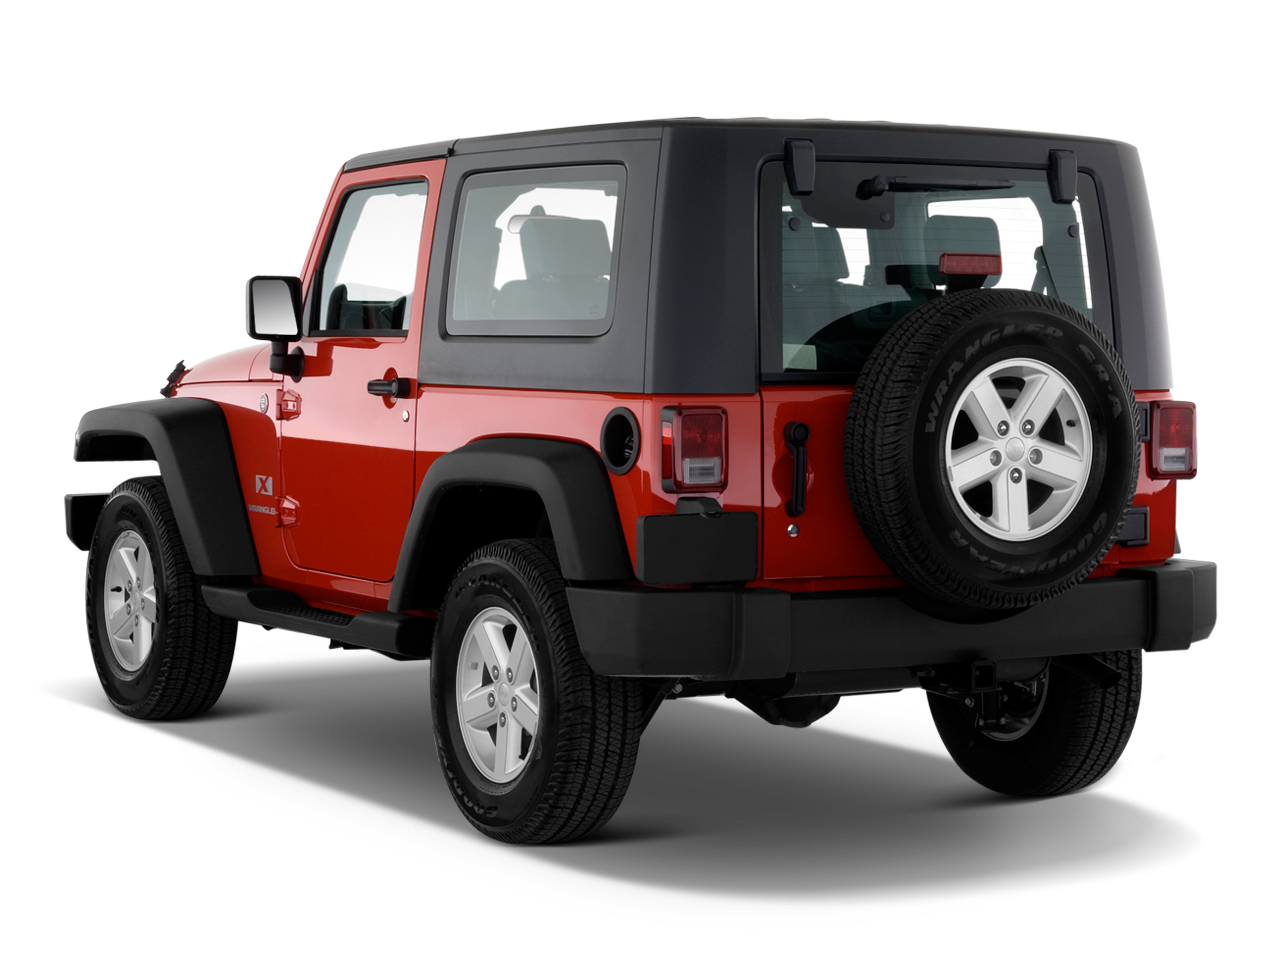 Old jeep keys png. Wrangler road test